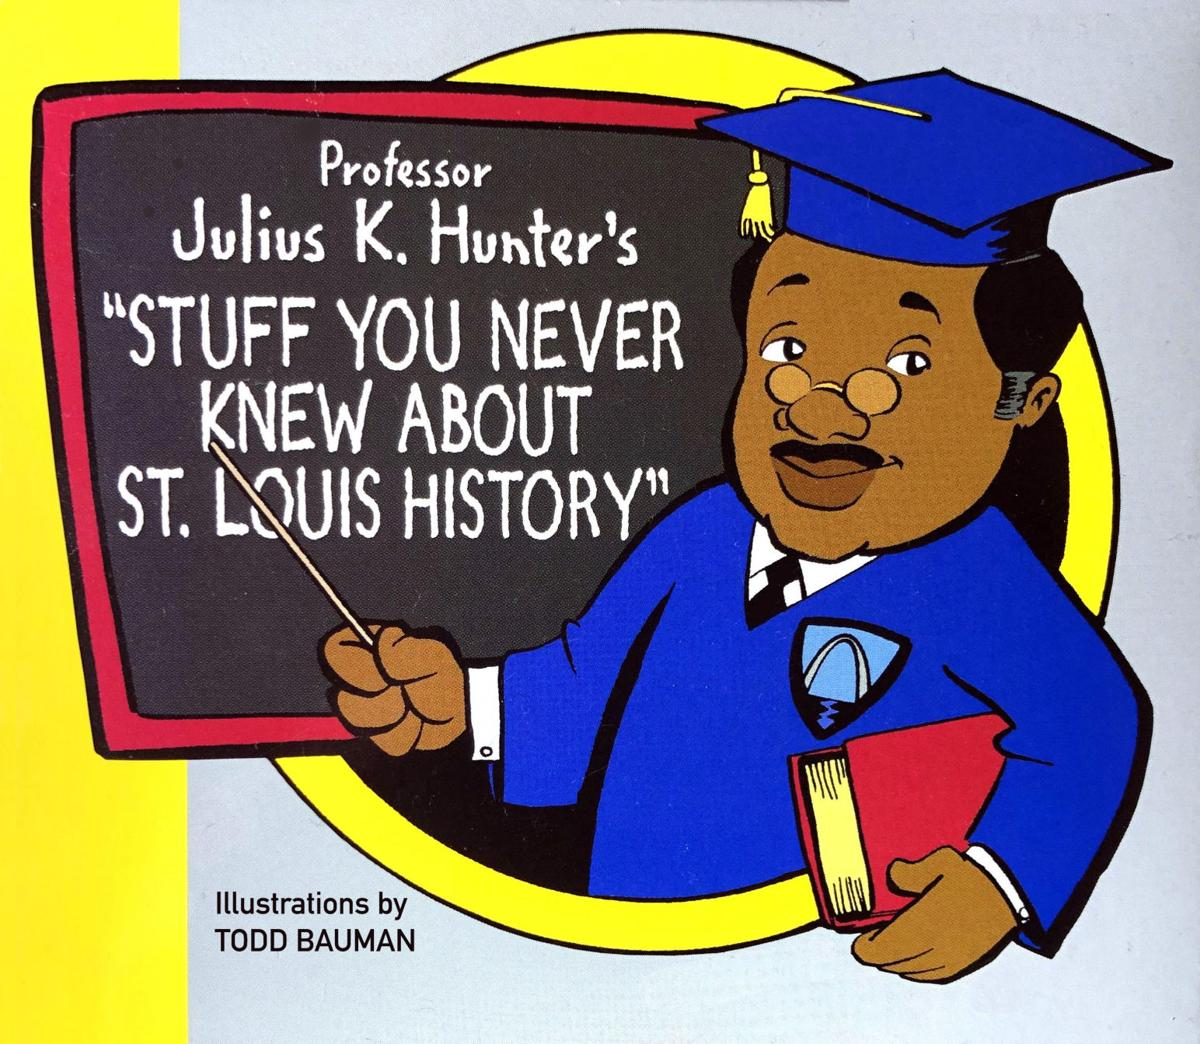 Former Anchorman Presents Little-Known St. Louis Historic Facts - Week 4